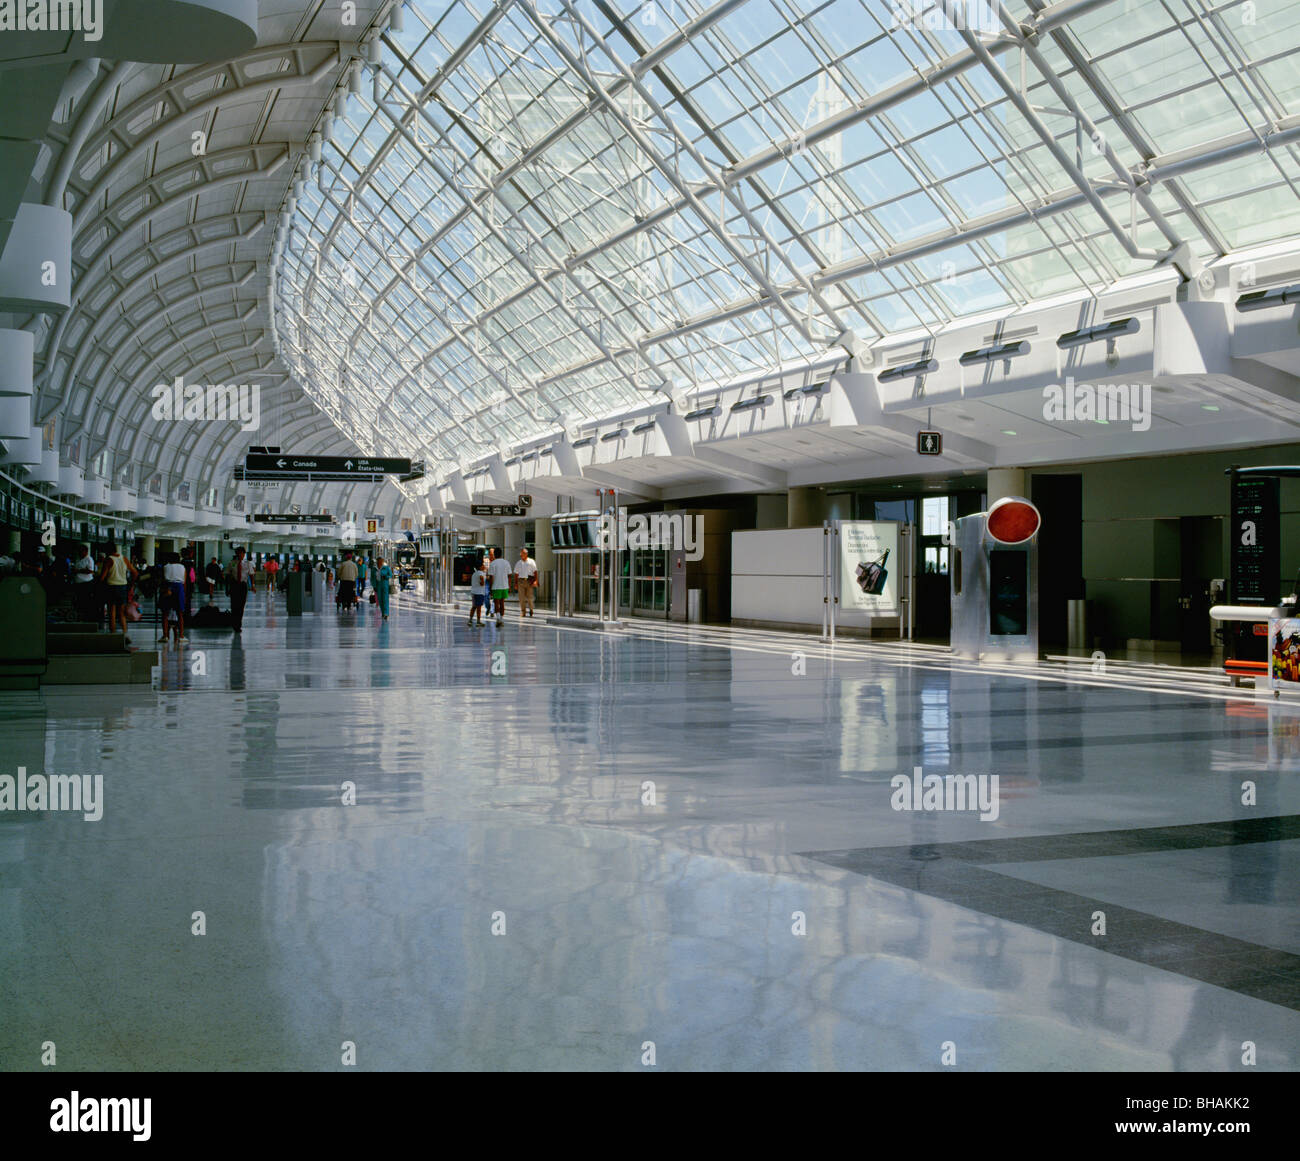 Toronto Pearson International Airport: Terminal 3, Pearson International Airport, Toronto